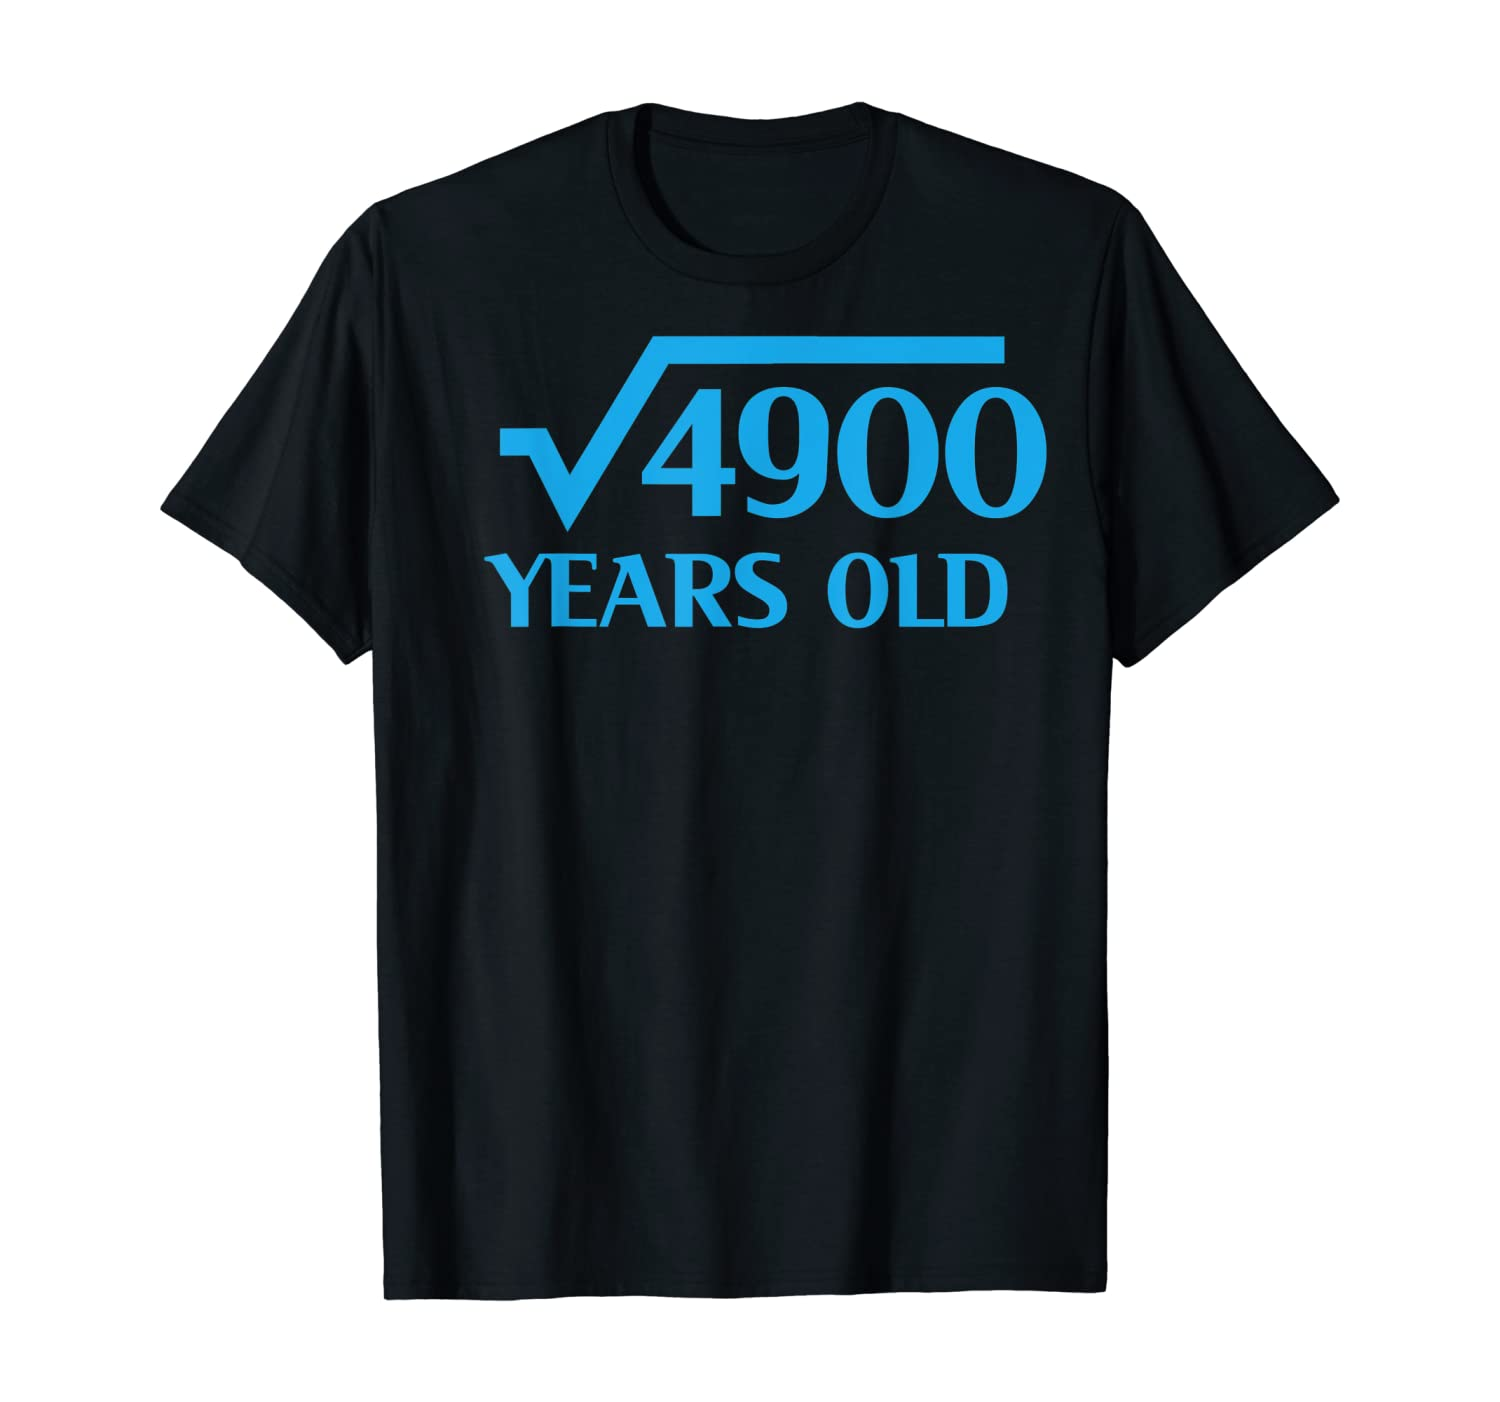 70th Happy Birthday Shirt 70 Years Old Square Root of 4900